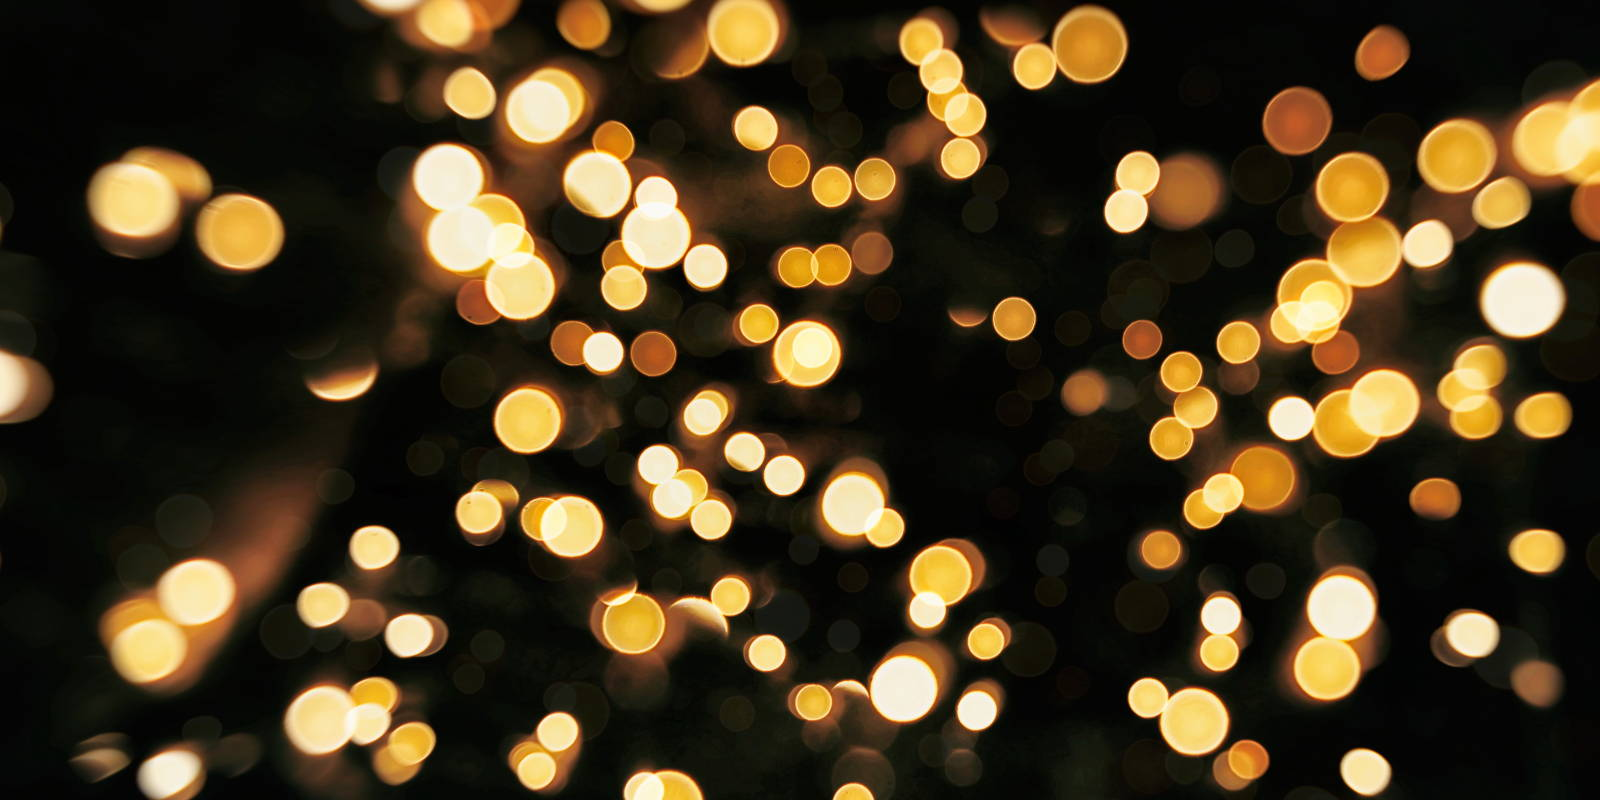 Golden fairy lights with black background